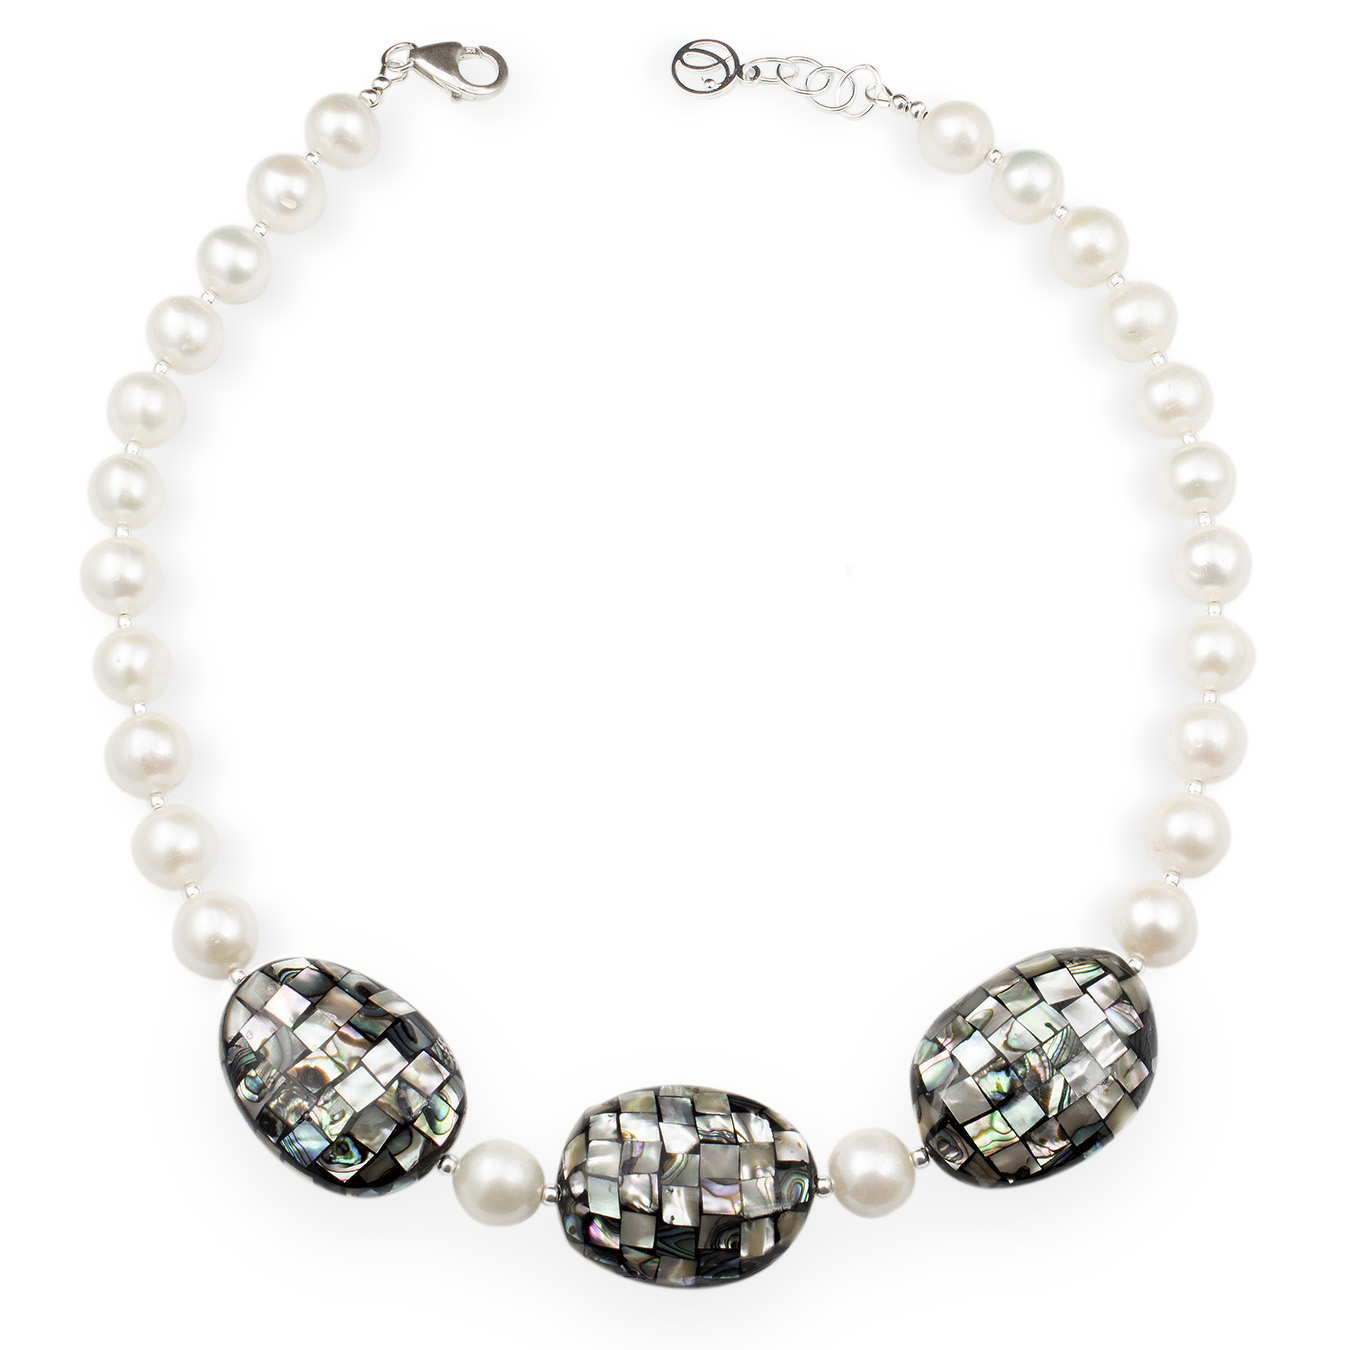 Customizable necklace with choice of AA pearls and paua shell bead